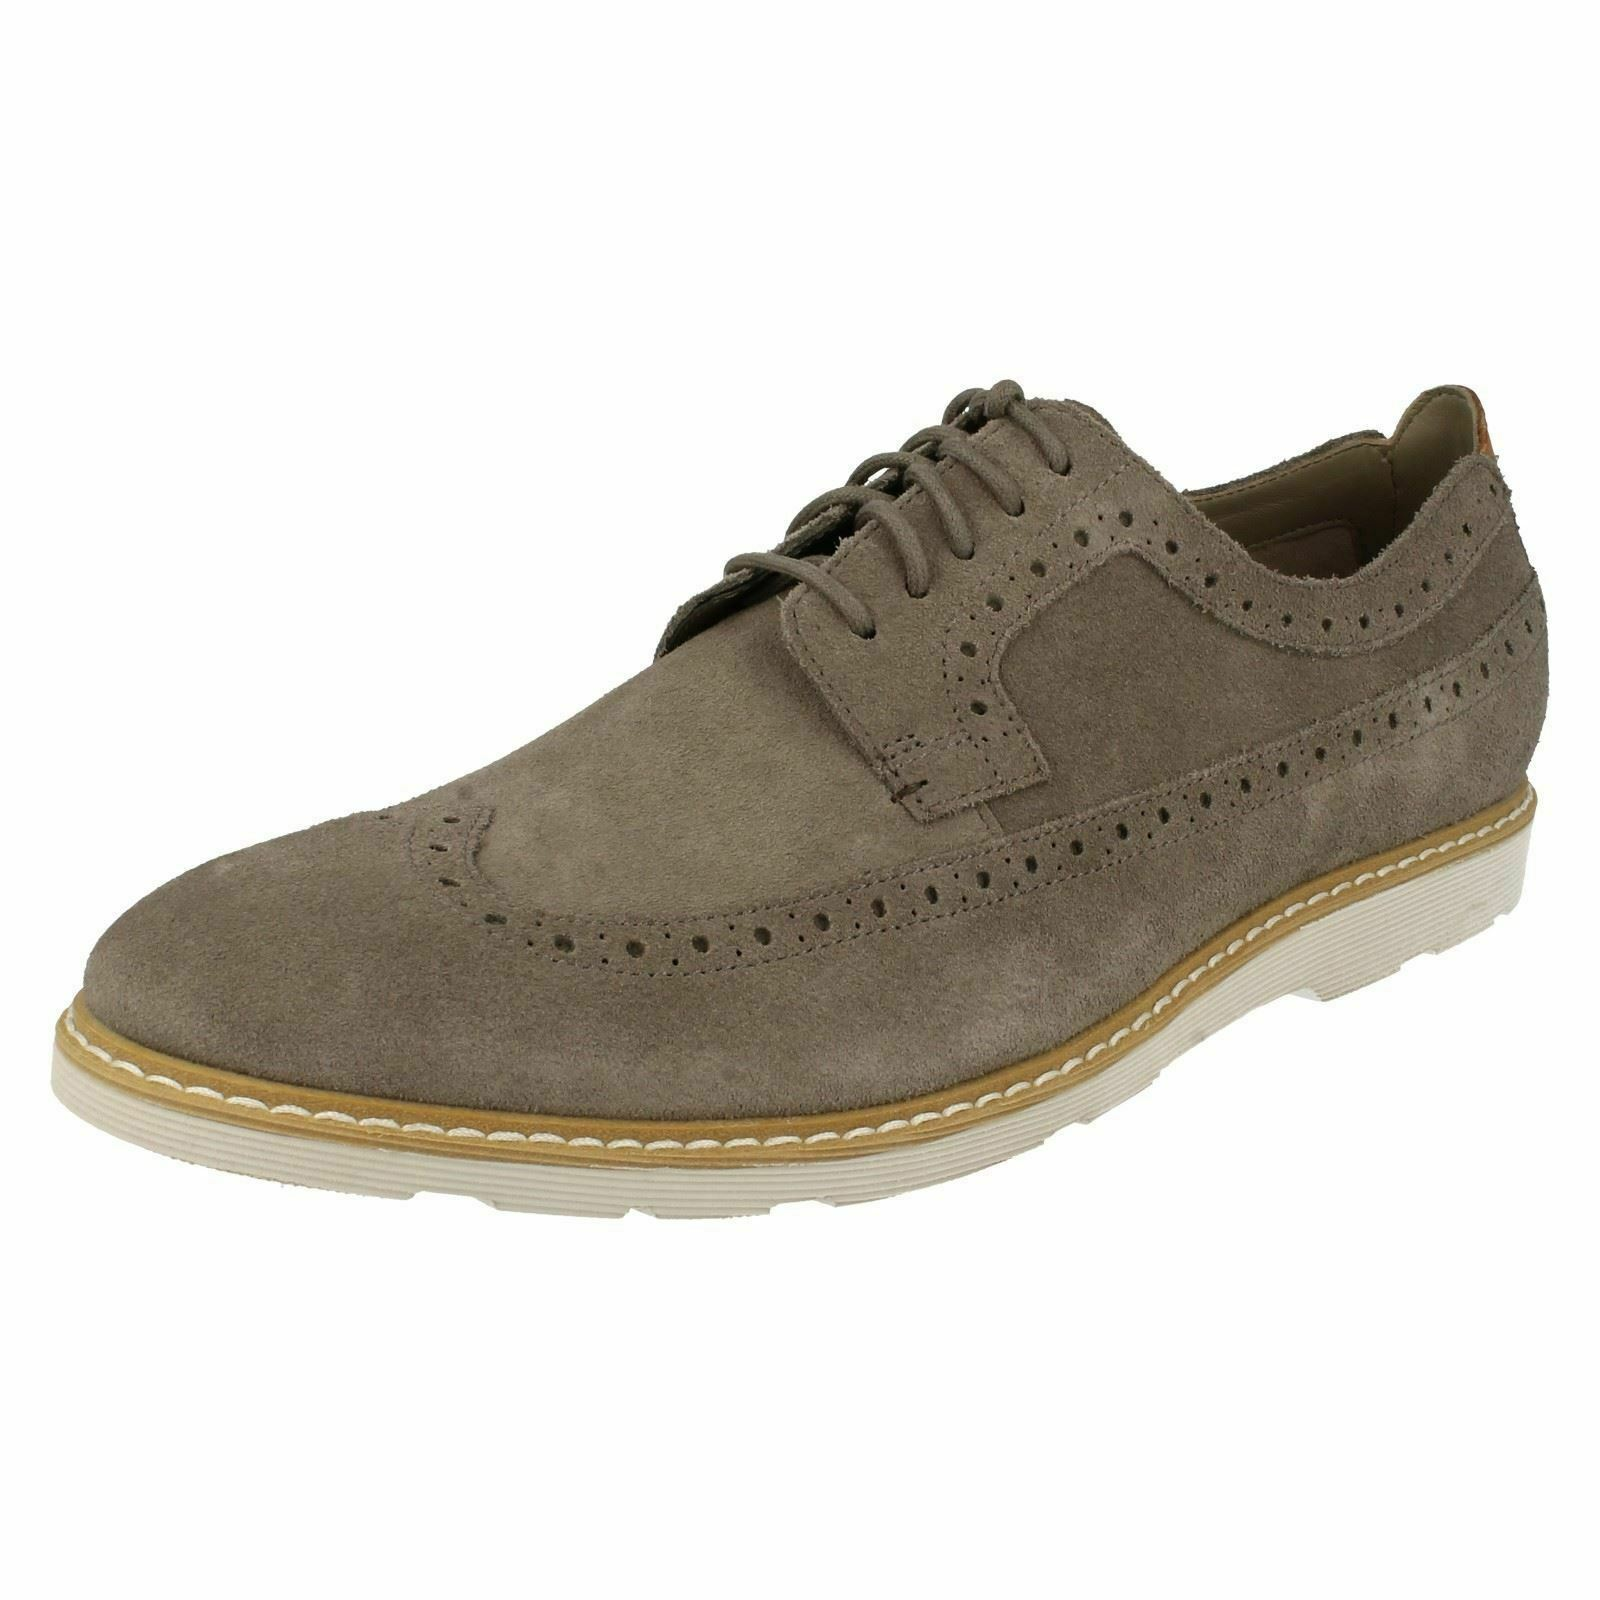 MENS CLARKS GAMBESON DRESS CASUAL LEATHER LIGHTWEIGHT LACE UP BROGUE SUEDE SHOES